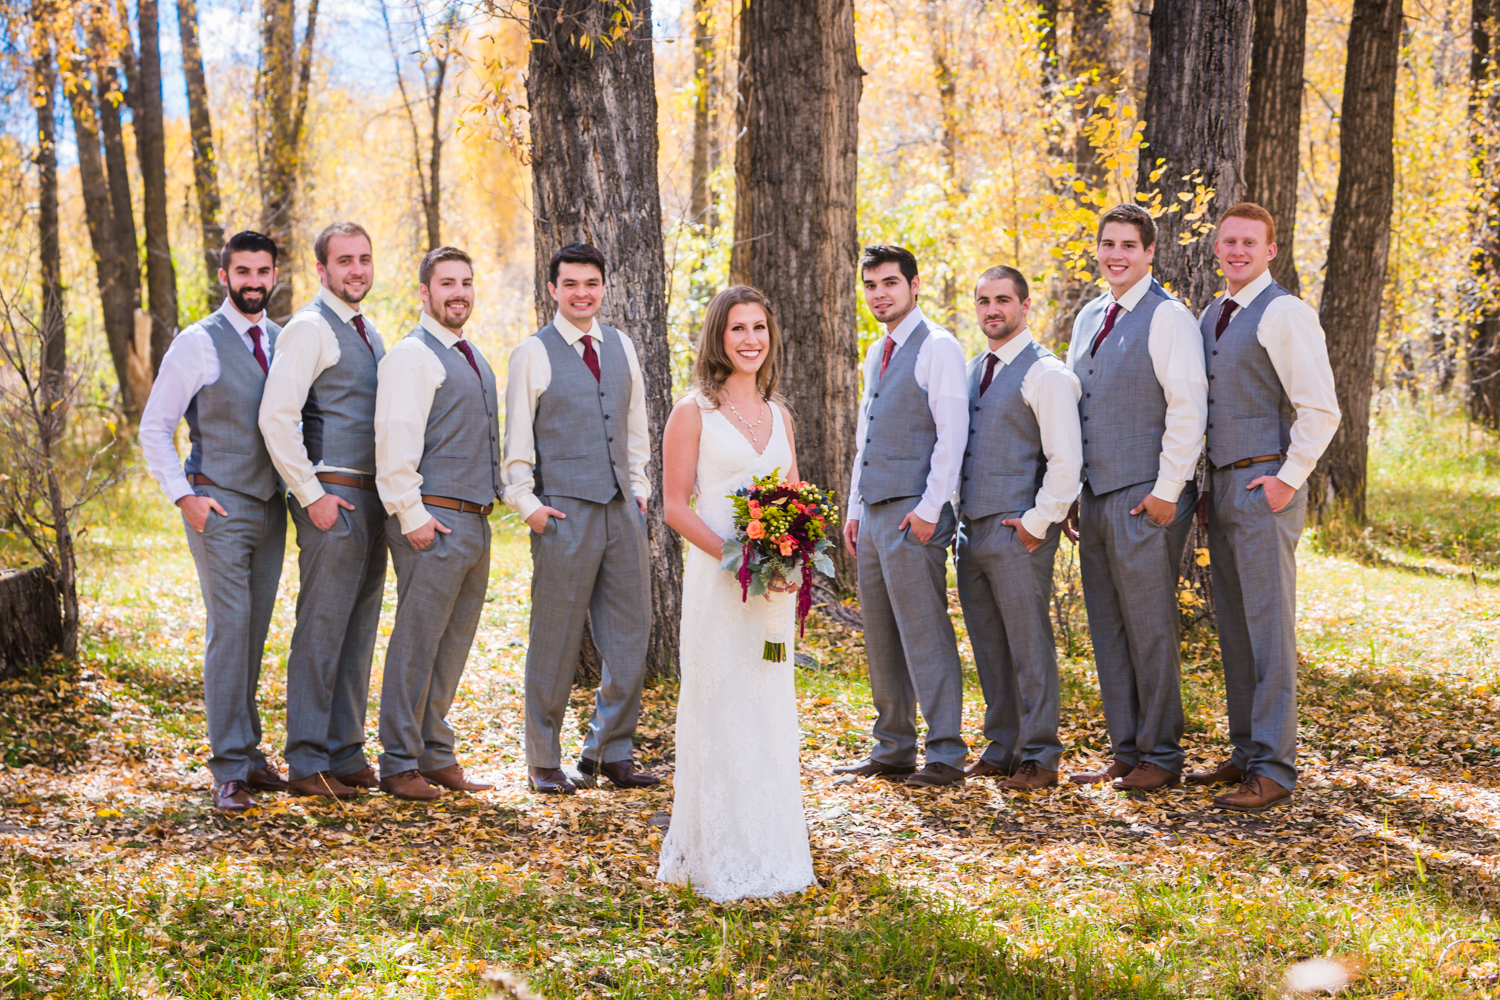 Bridal party for fall wedding by JMGant Photography